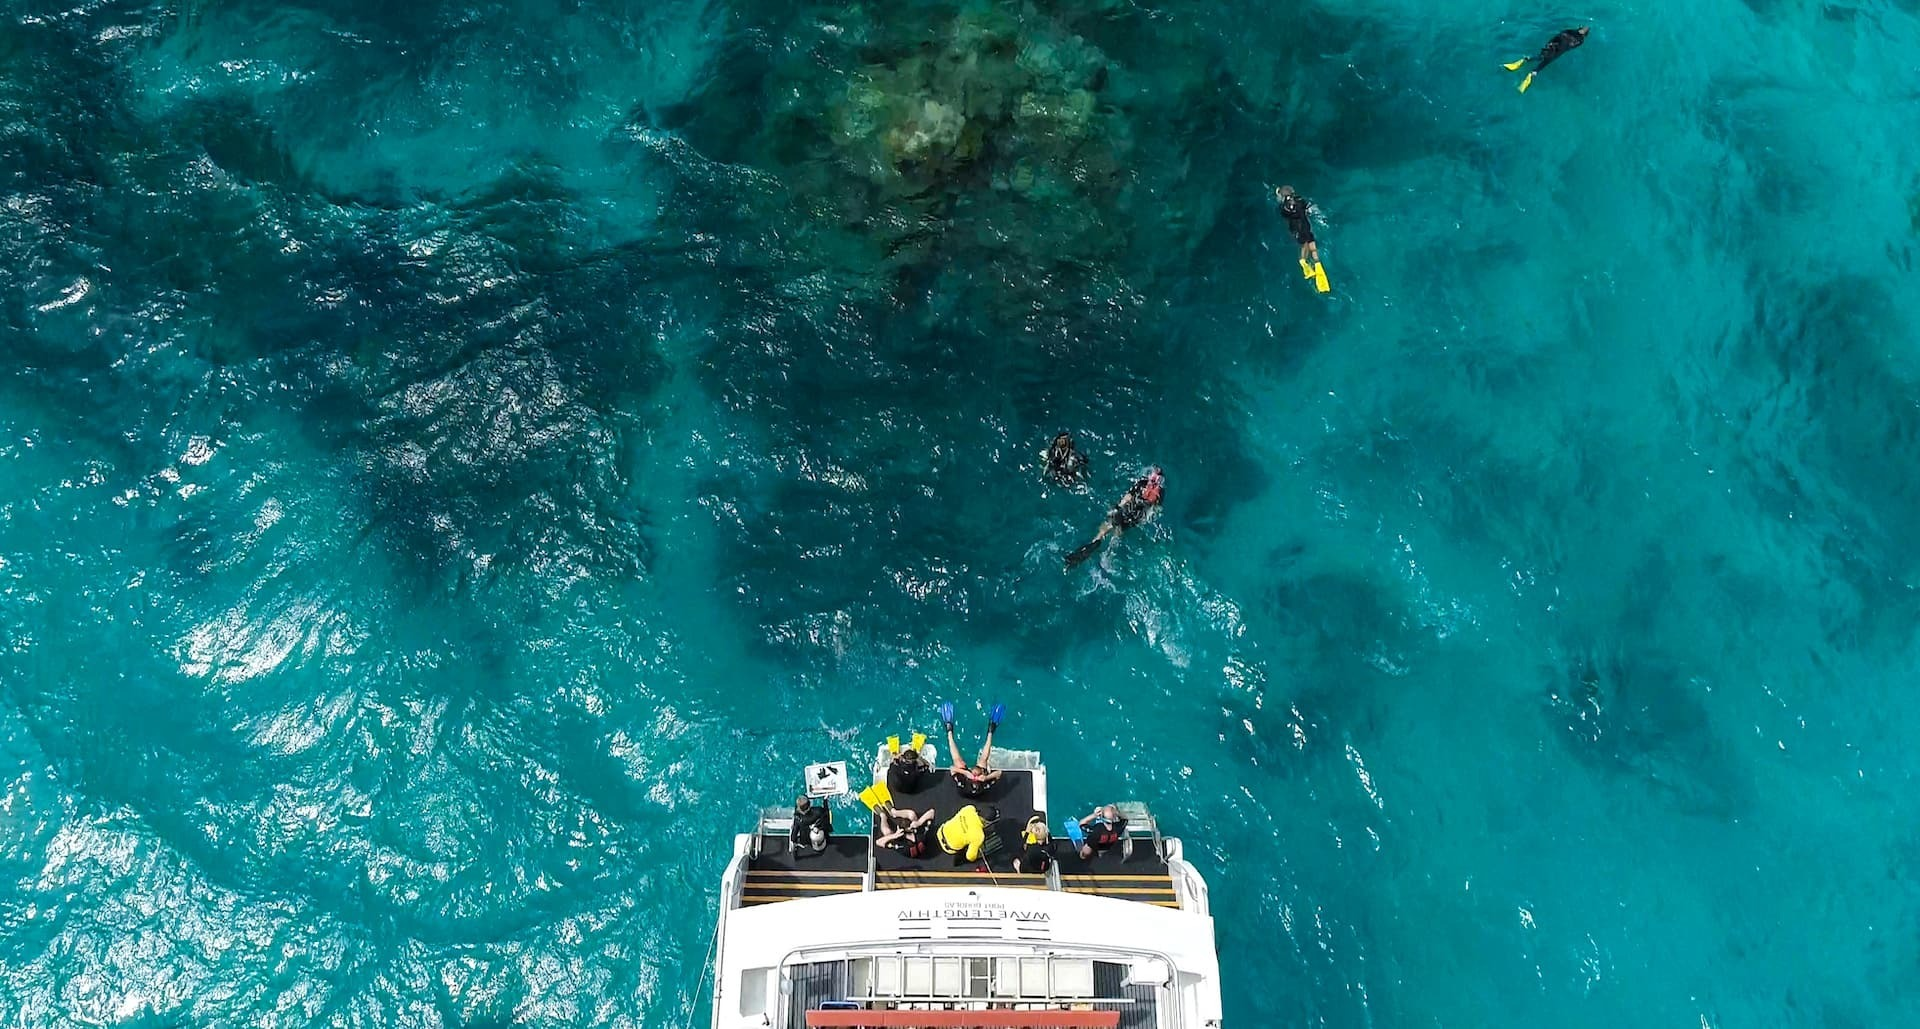 A New Spiced Rum Brand Is Helping Regrow The Great Barrier Reef, reeftip drinks co. coral growth, spawning, nursery, great barrier reef, diving, boat